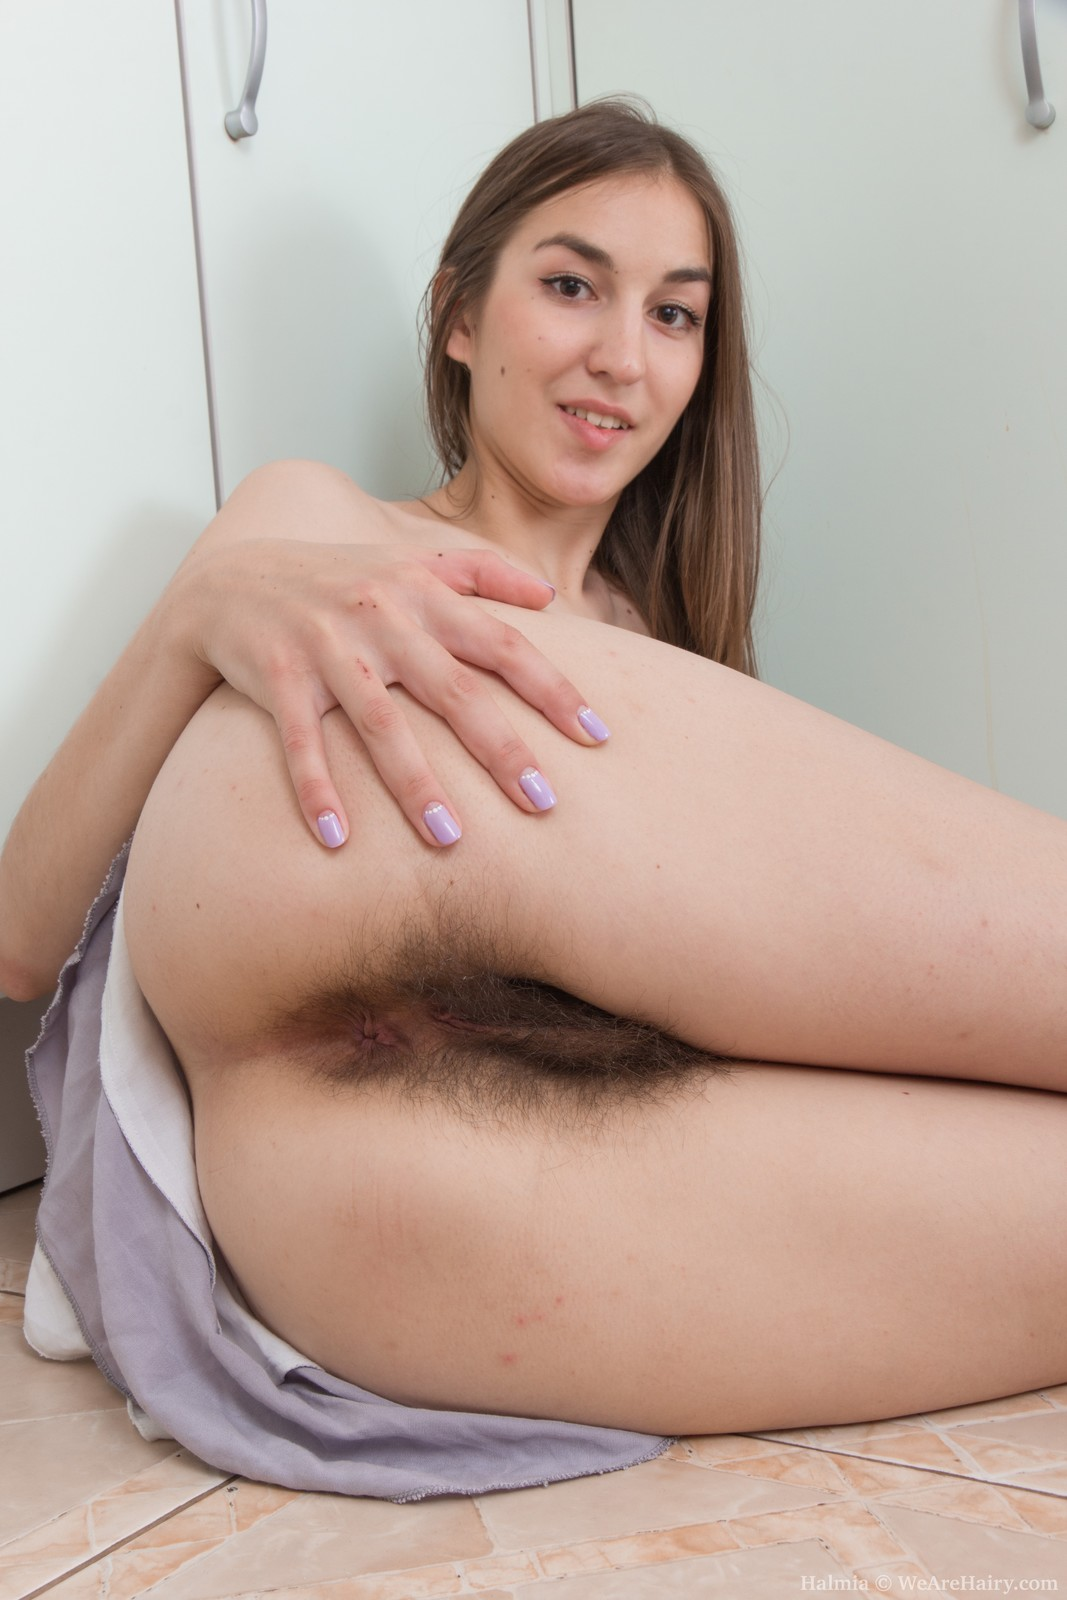 Agree, this Hairy upskirt sex photos thanks